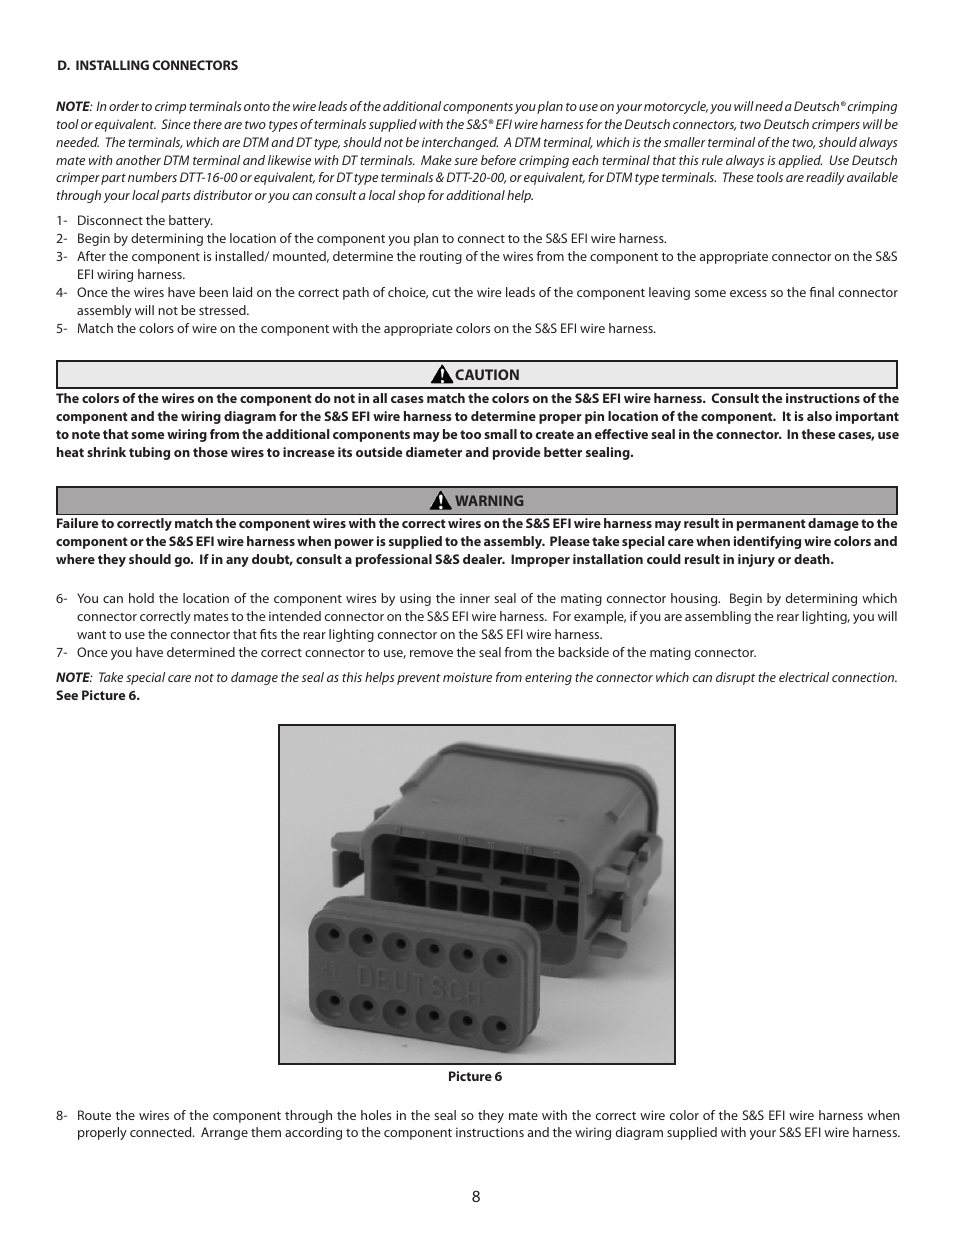 hight resolution of s s cycle efi wire harness for custom frame applications using s s fuel injected engines and delphi style modules user manual page 8 16